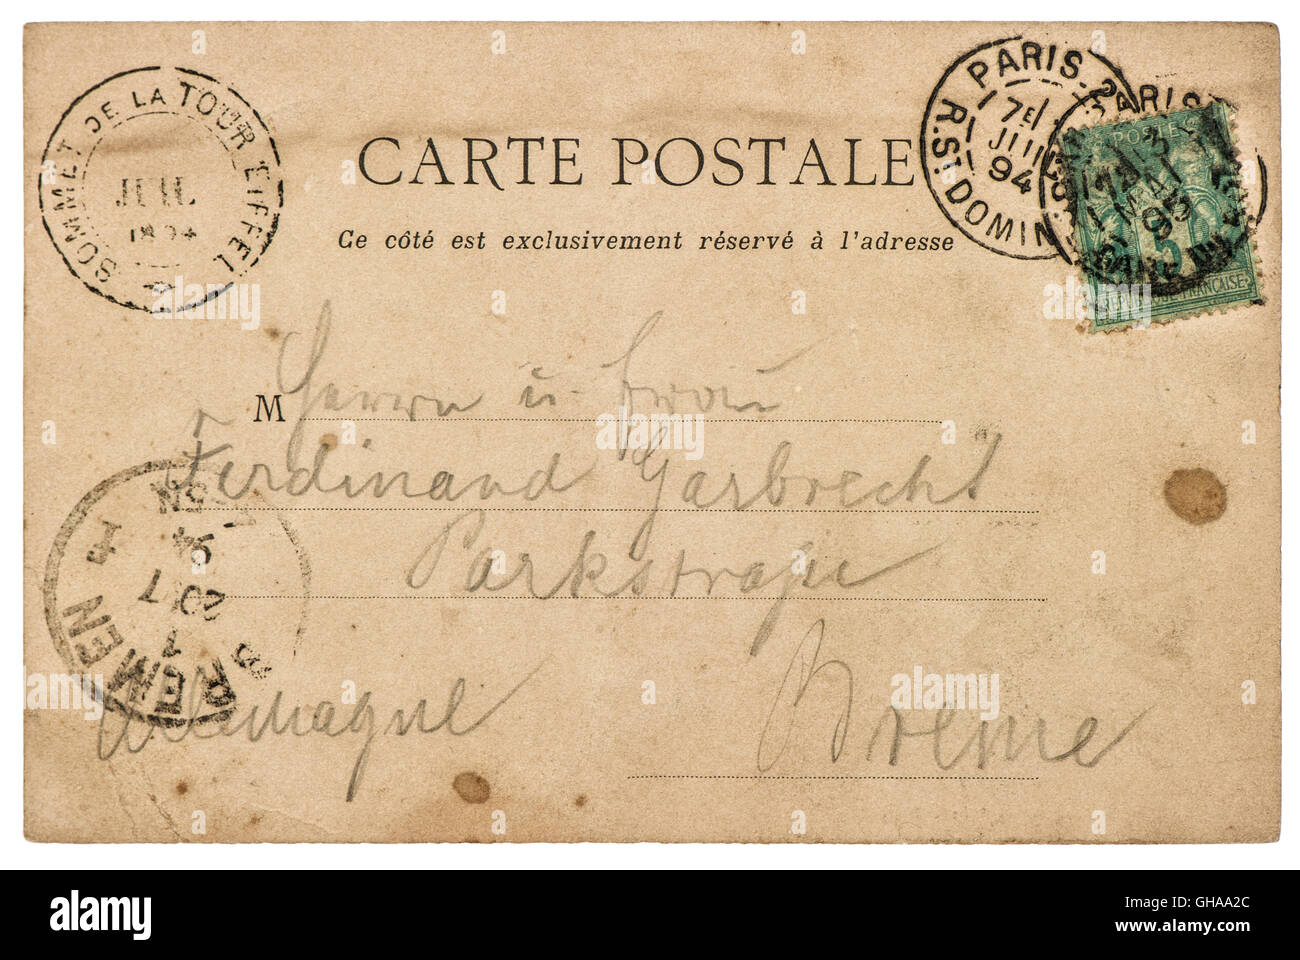 Vintage Handwritten Postcard Letter With Unreadable Undefined Text Used Paper Texture Background